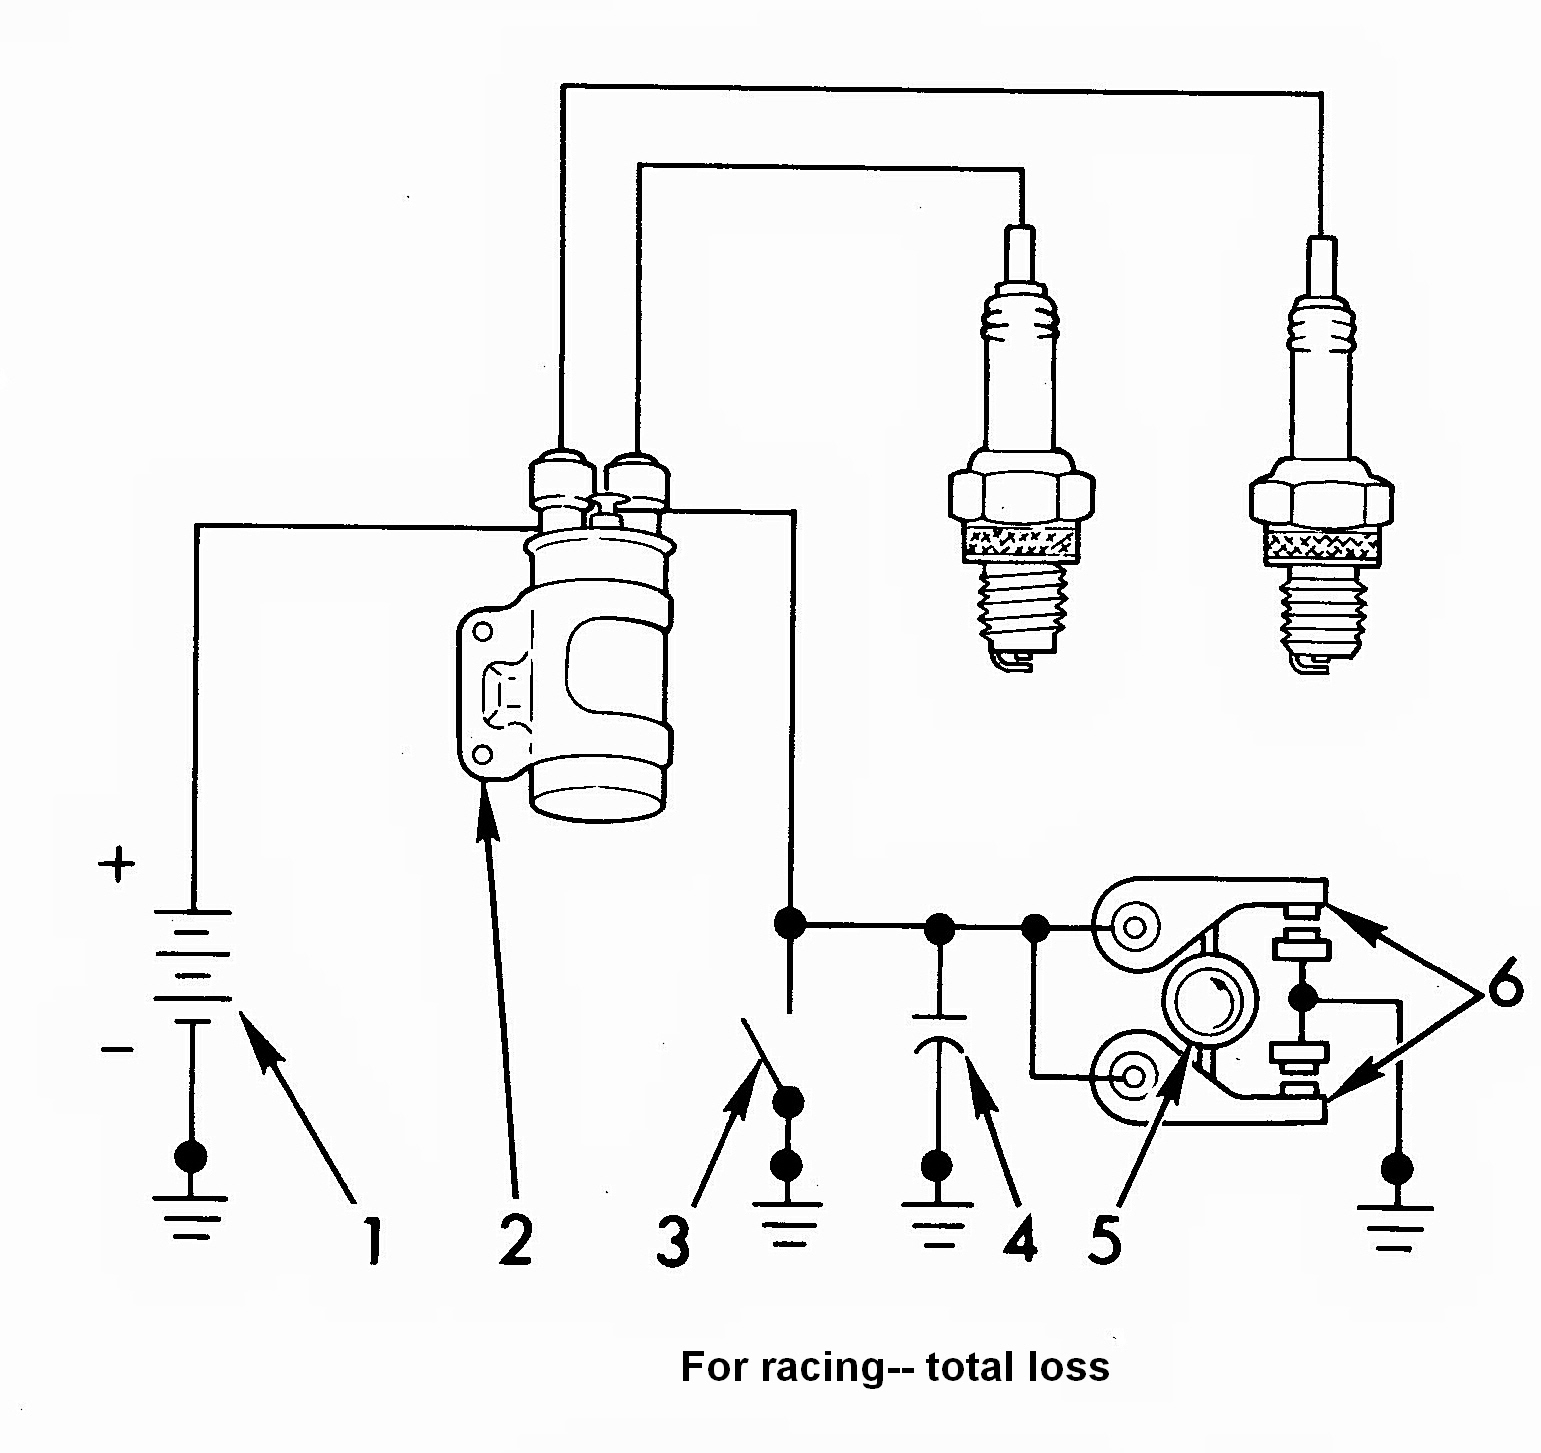 Single Point Distributor Wiring Diagram Gm | Wiring Diagram - Chevy Ignition Coil Wiring Diagram